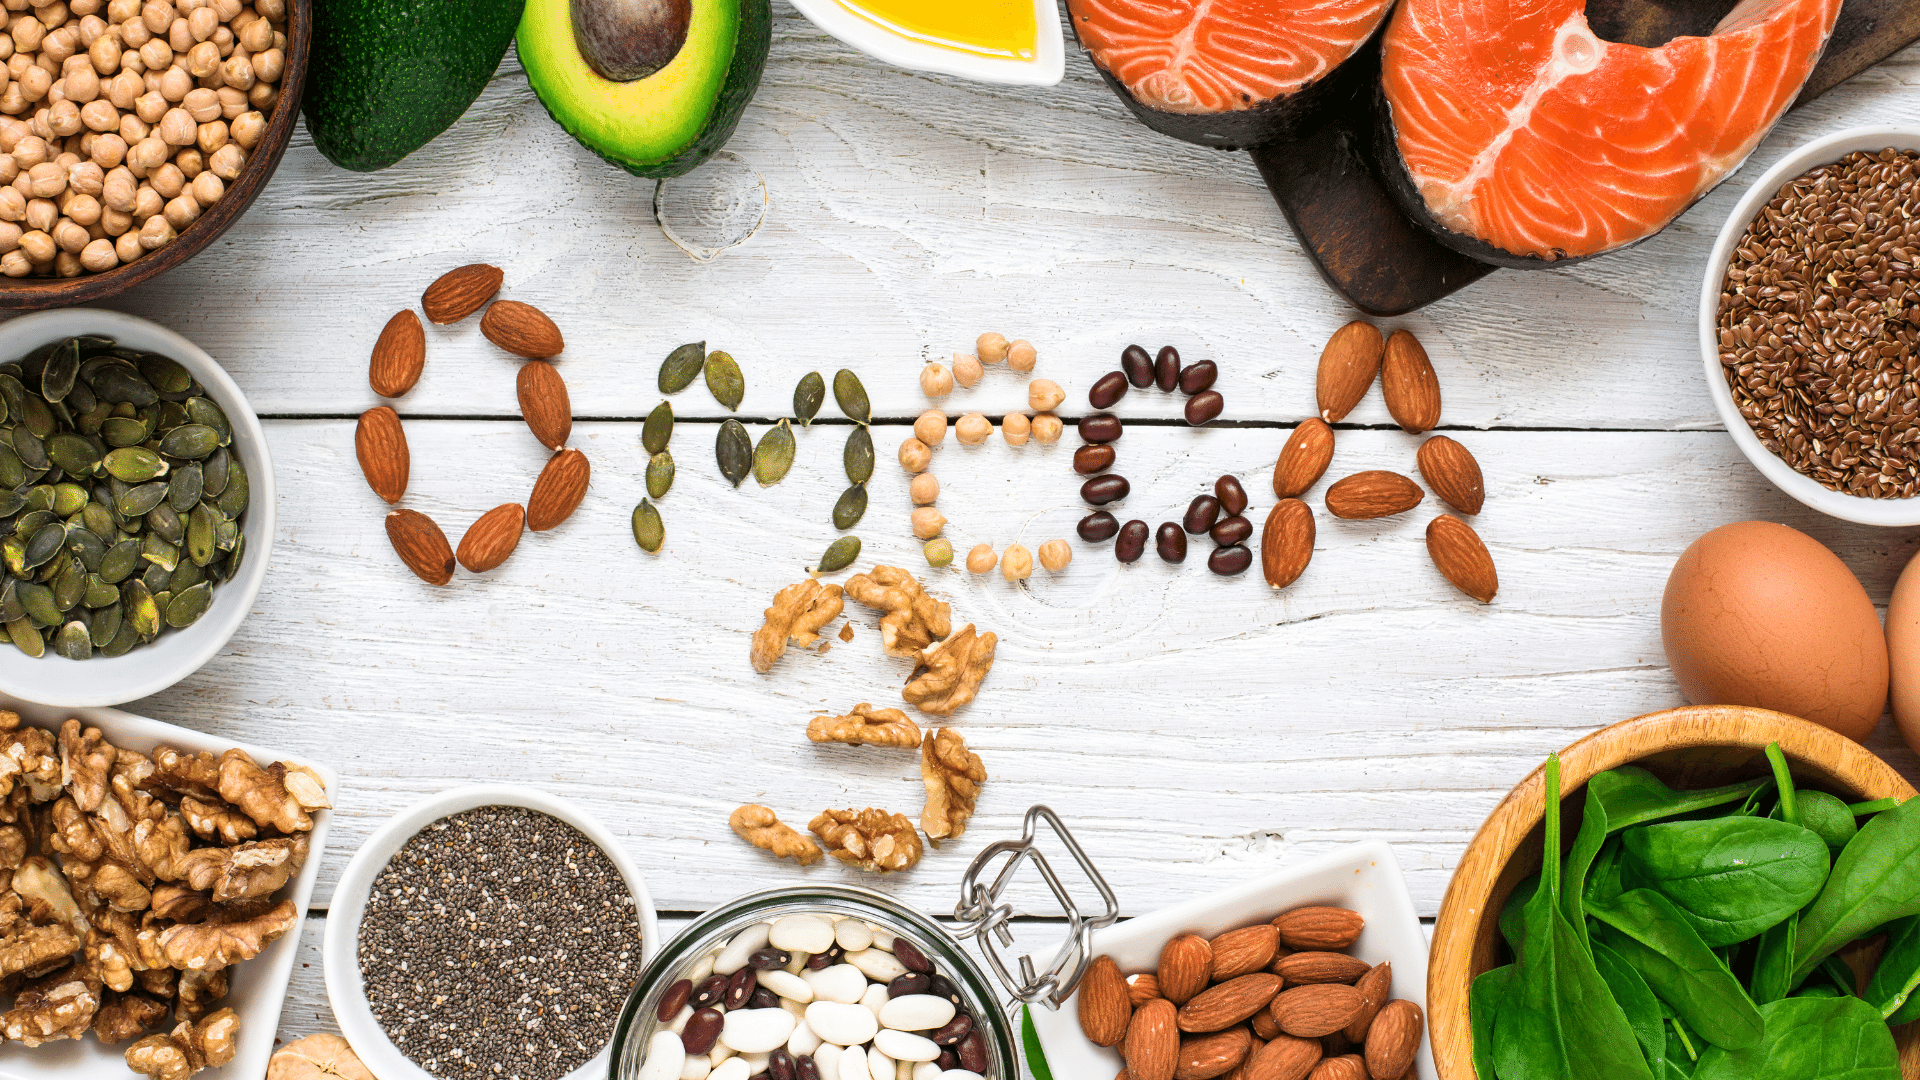 5 Best Omega 3 Supplements in 2020